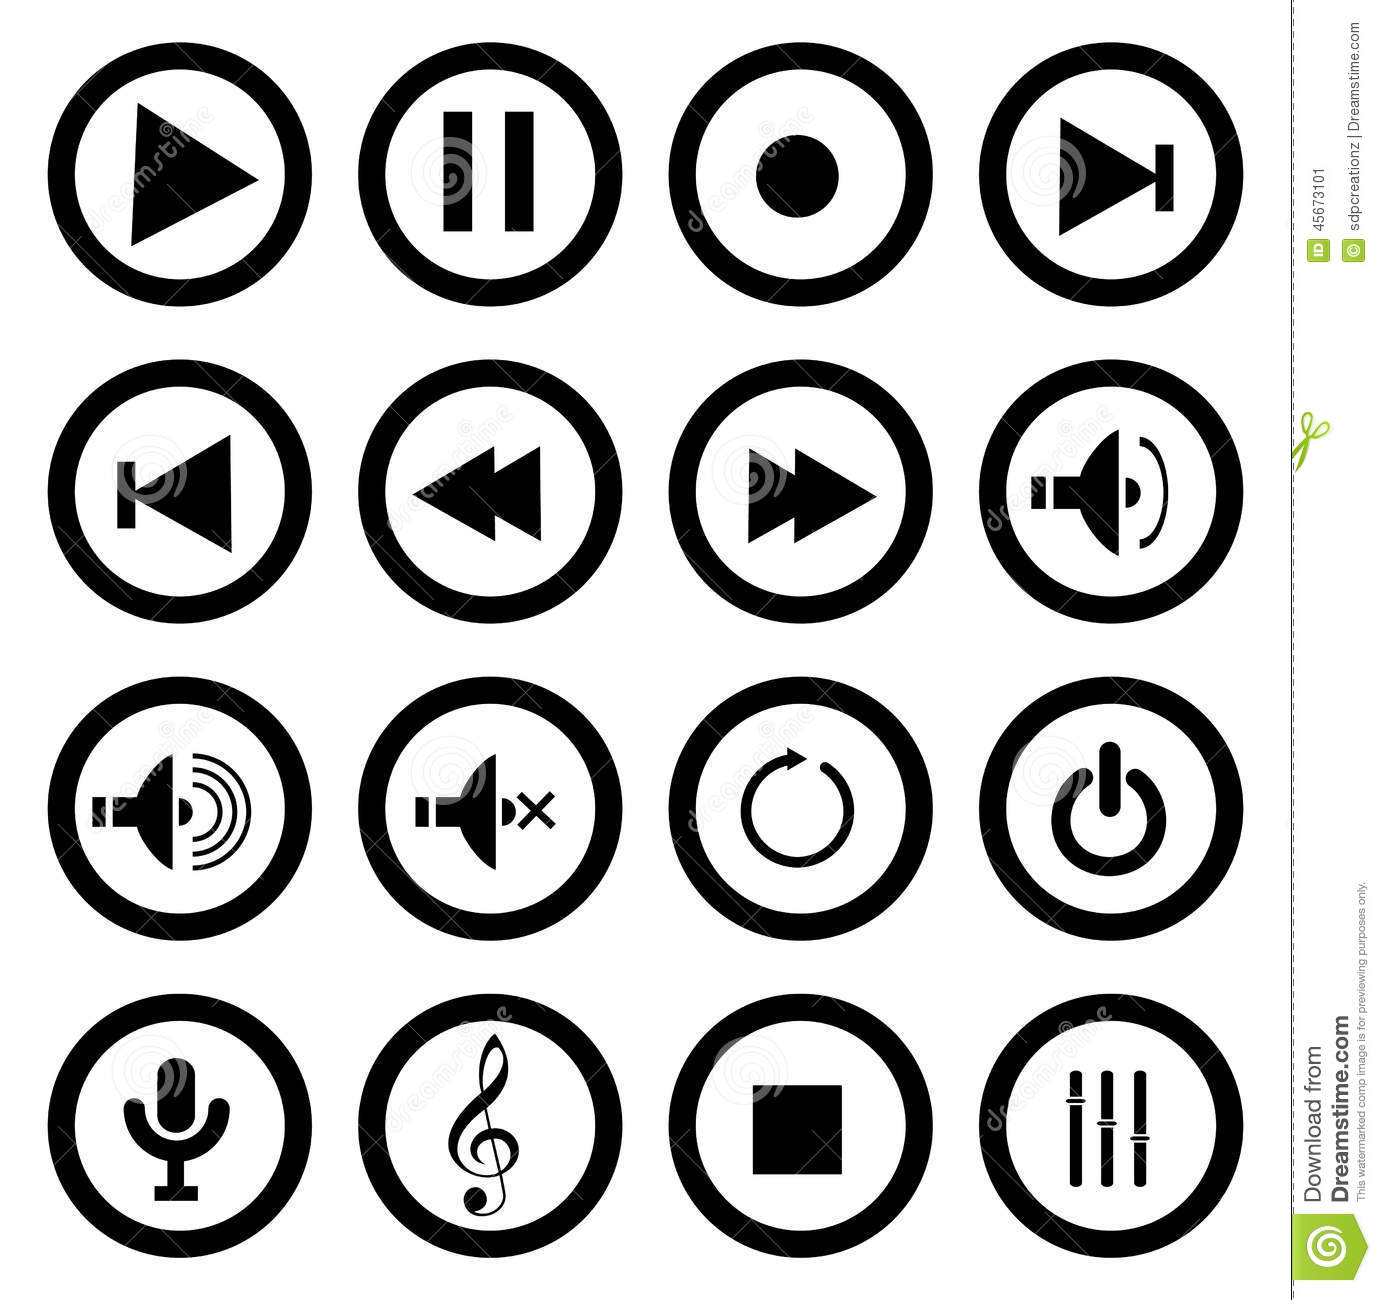 Music play icons stock vector. Image of internet, graphic